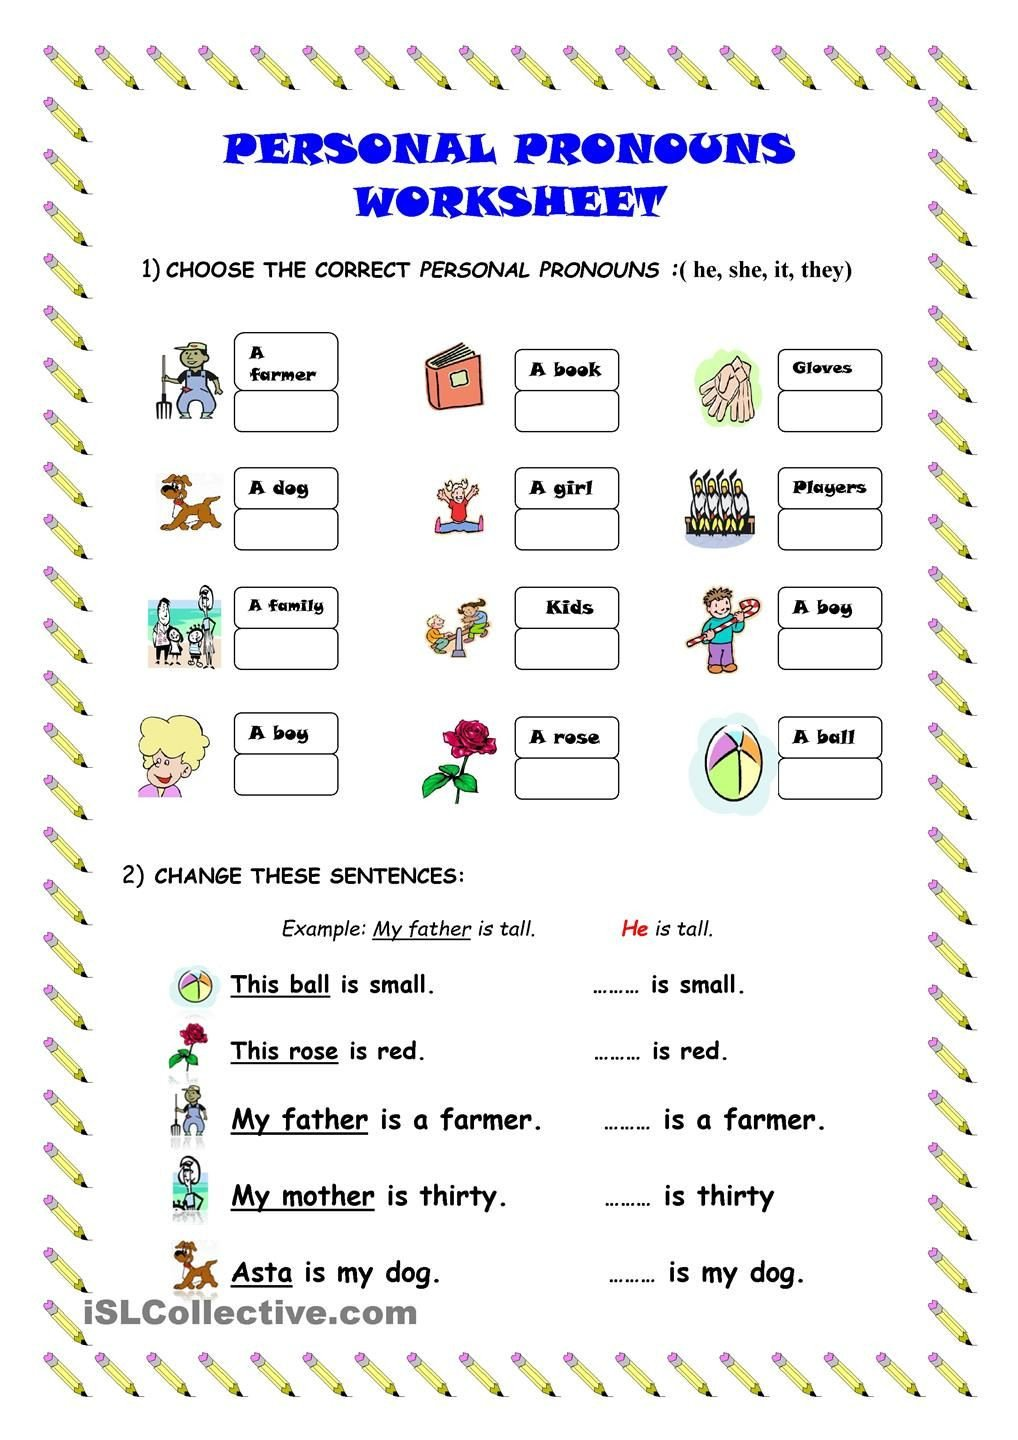 Personal pronouns worksheet kindergarten level